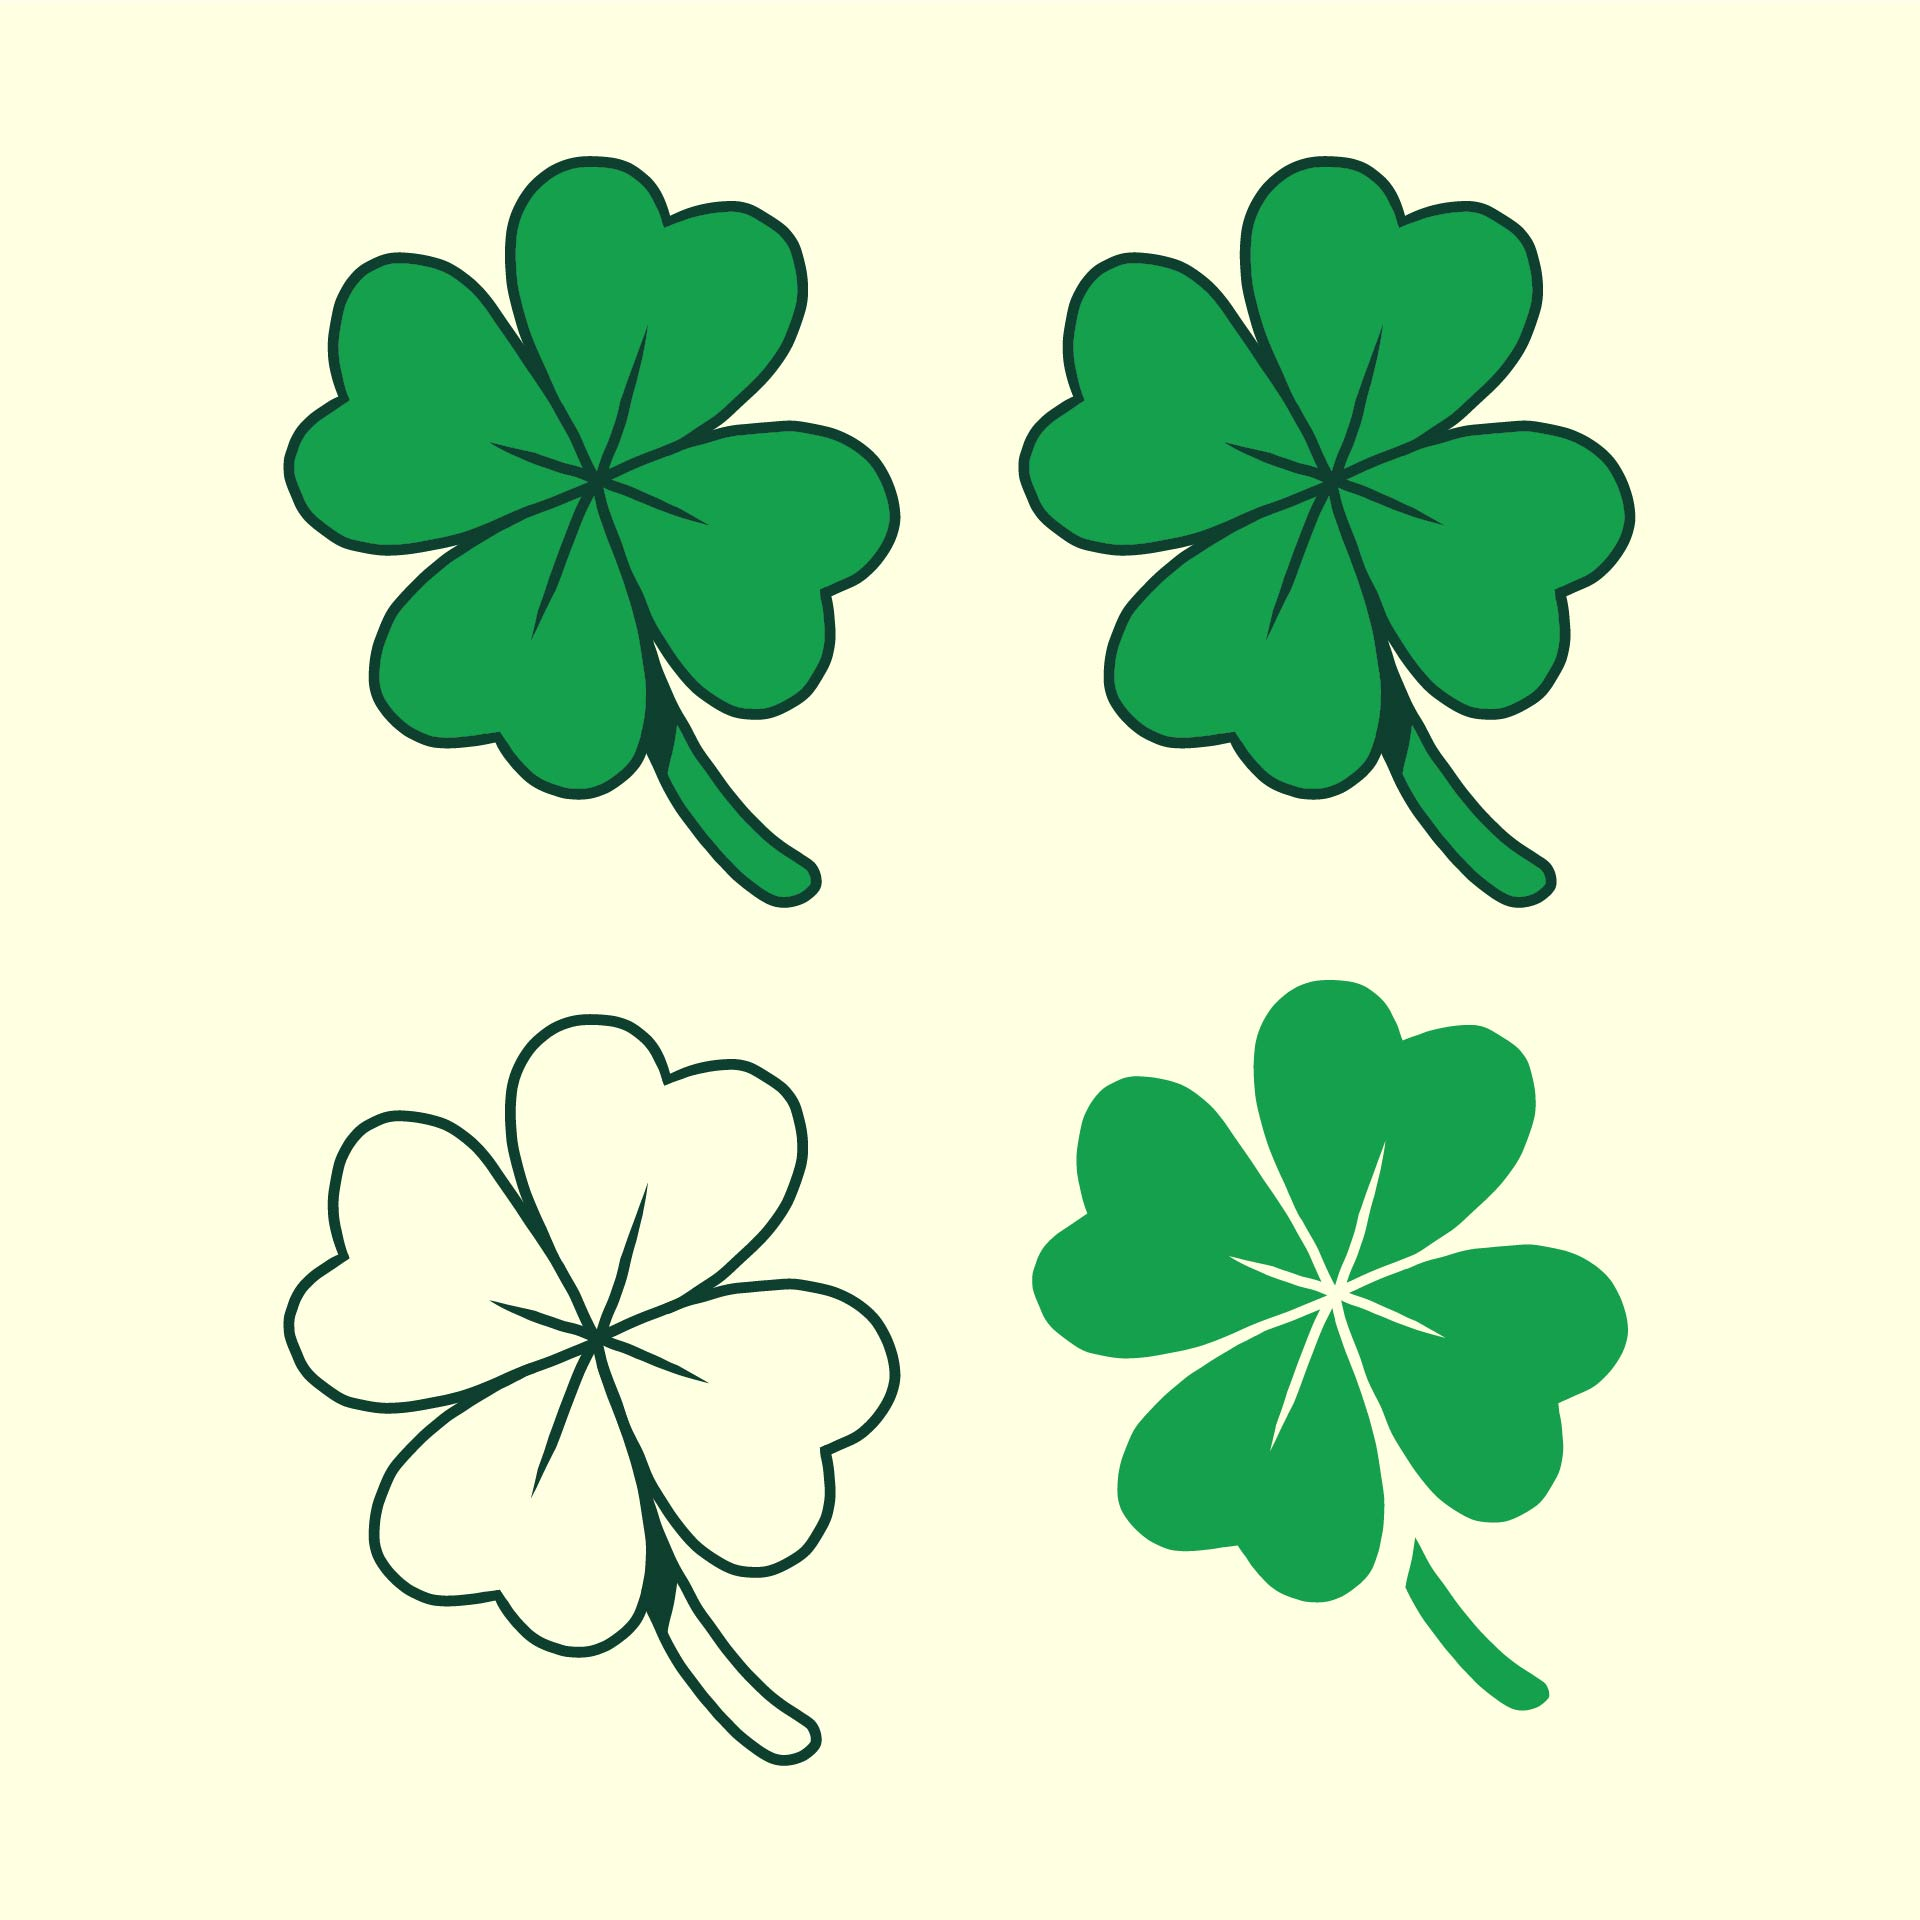 5 Best Images Of Four Leaf Shamrock Template Printable St Patrick S Day Clover Template 4 Clover Leaf Template Shamrock Pattern And Four Leaf Clover Pattern Printable Printablee Com